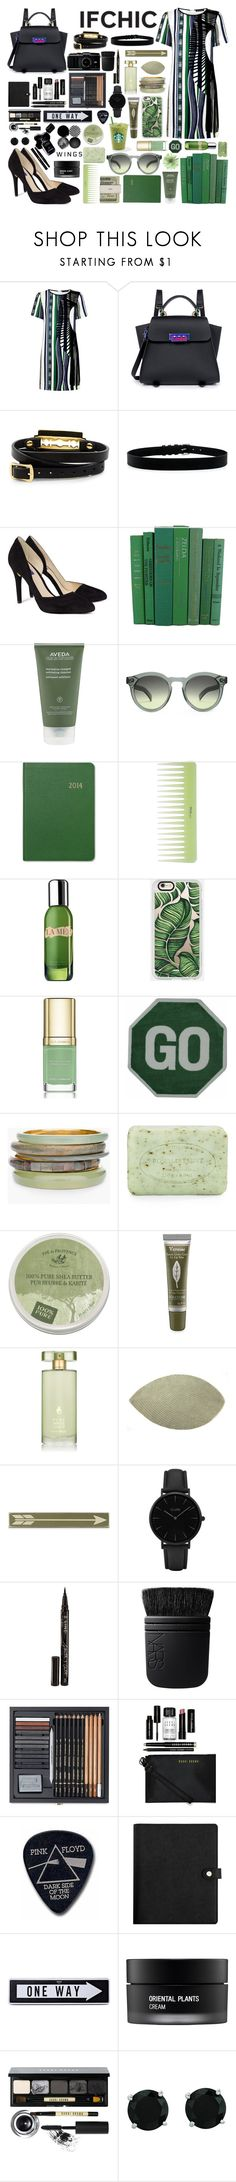 """""""#6"""" by mica-villarreal ❤ liked on Polyvore featuring Être Cécile, ZAC Zac Posen, McQ by Alexander McQueen, IRO, Dee Keller, Aveda, Illesteva, Graphic Image, Jack Spade and La Mer"""